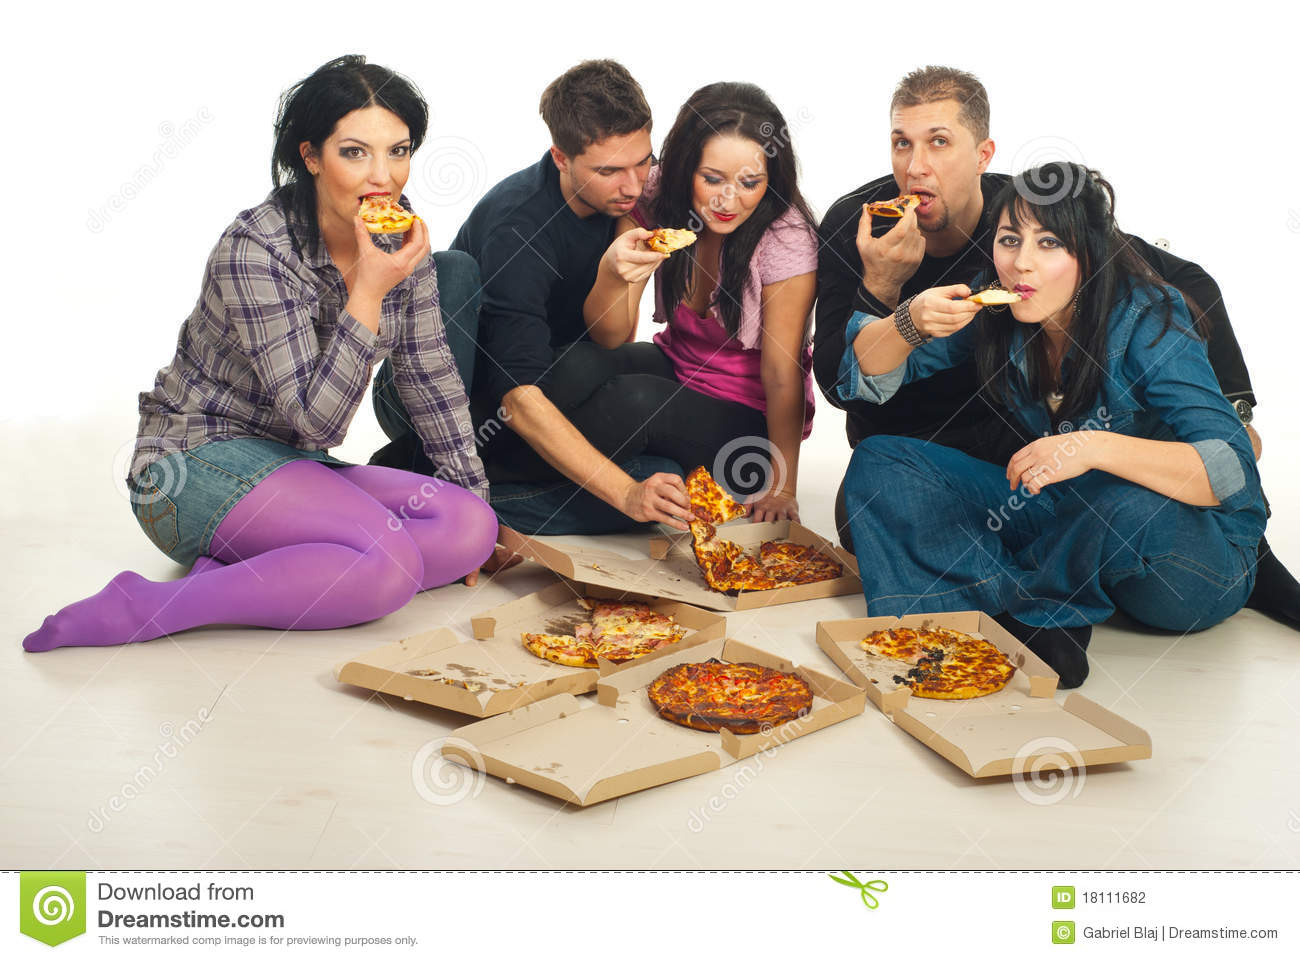 Group Of Five Friends Eating Delivery Pizza And Sitting Together On